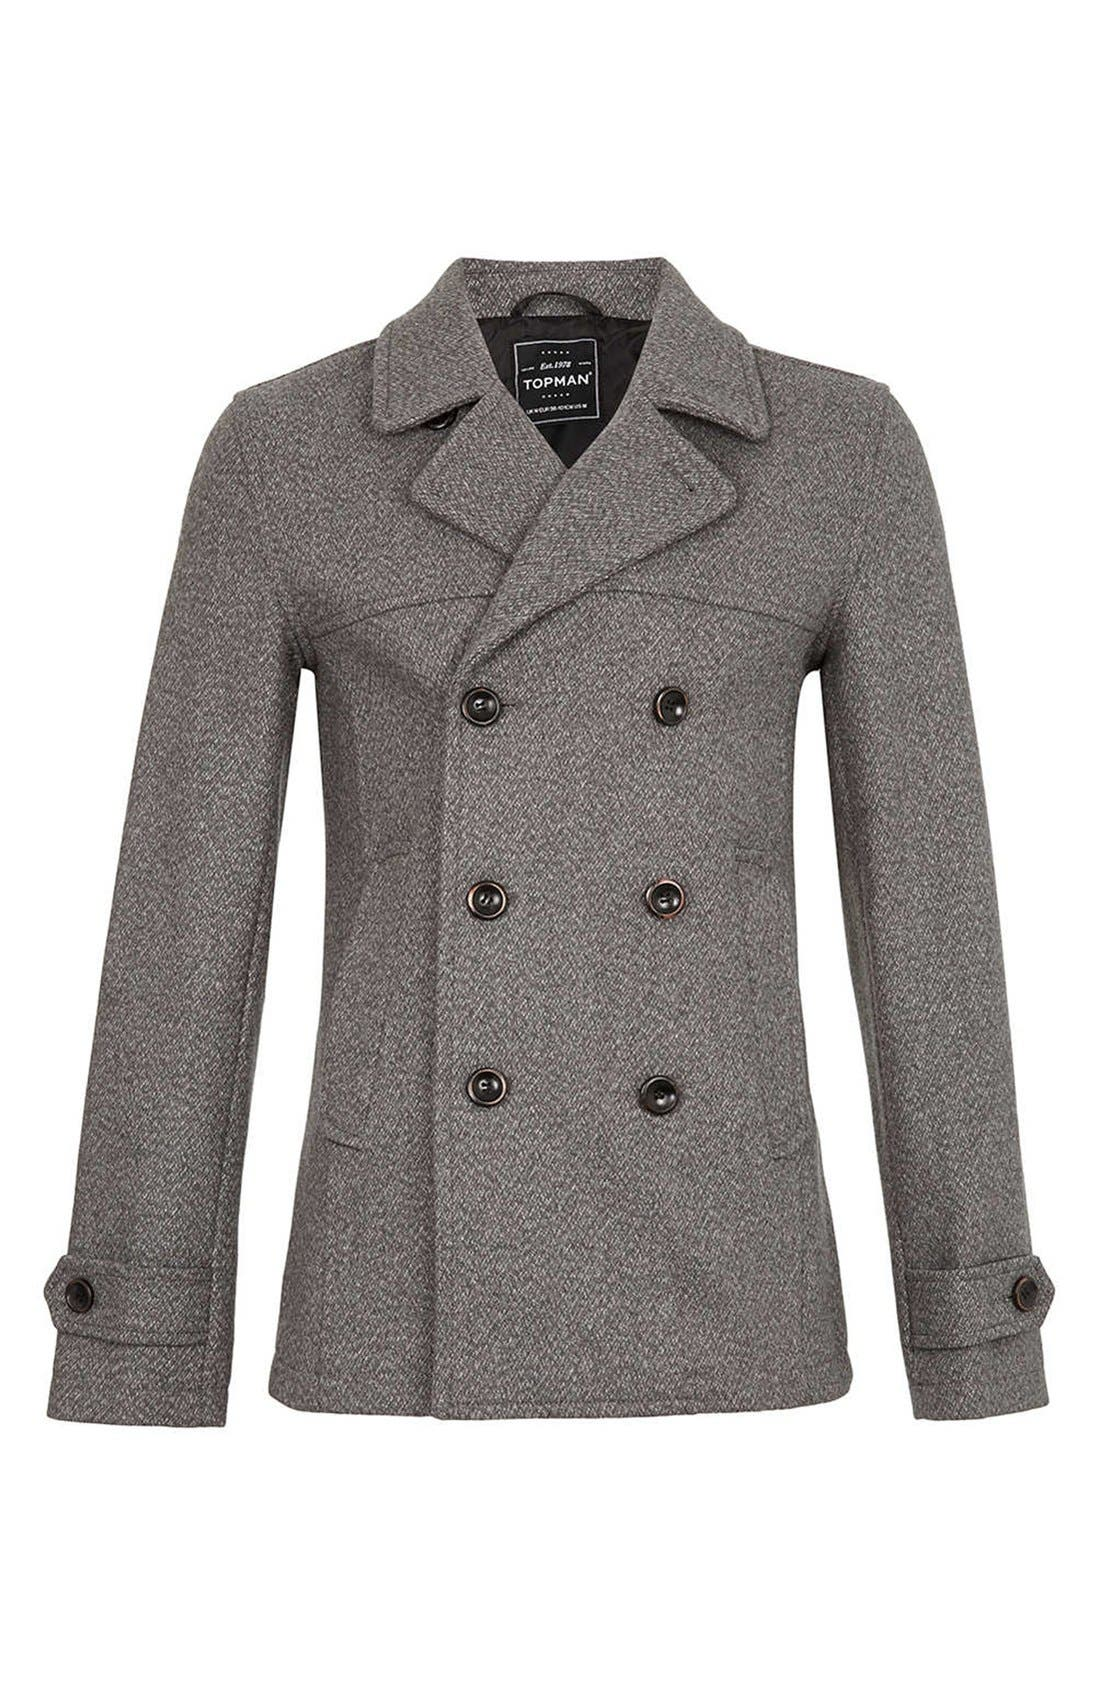 Alternate Image 1 Selected - Topman Skinny Fit Double Breasted Peacoat